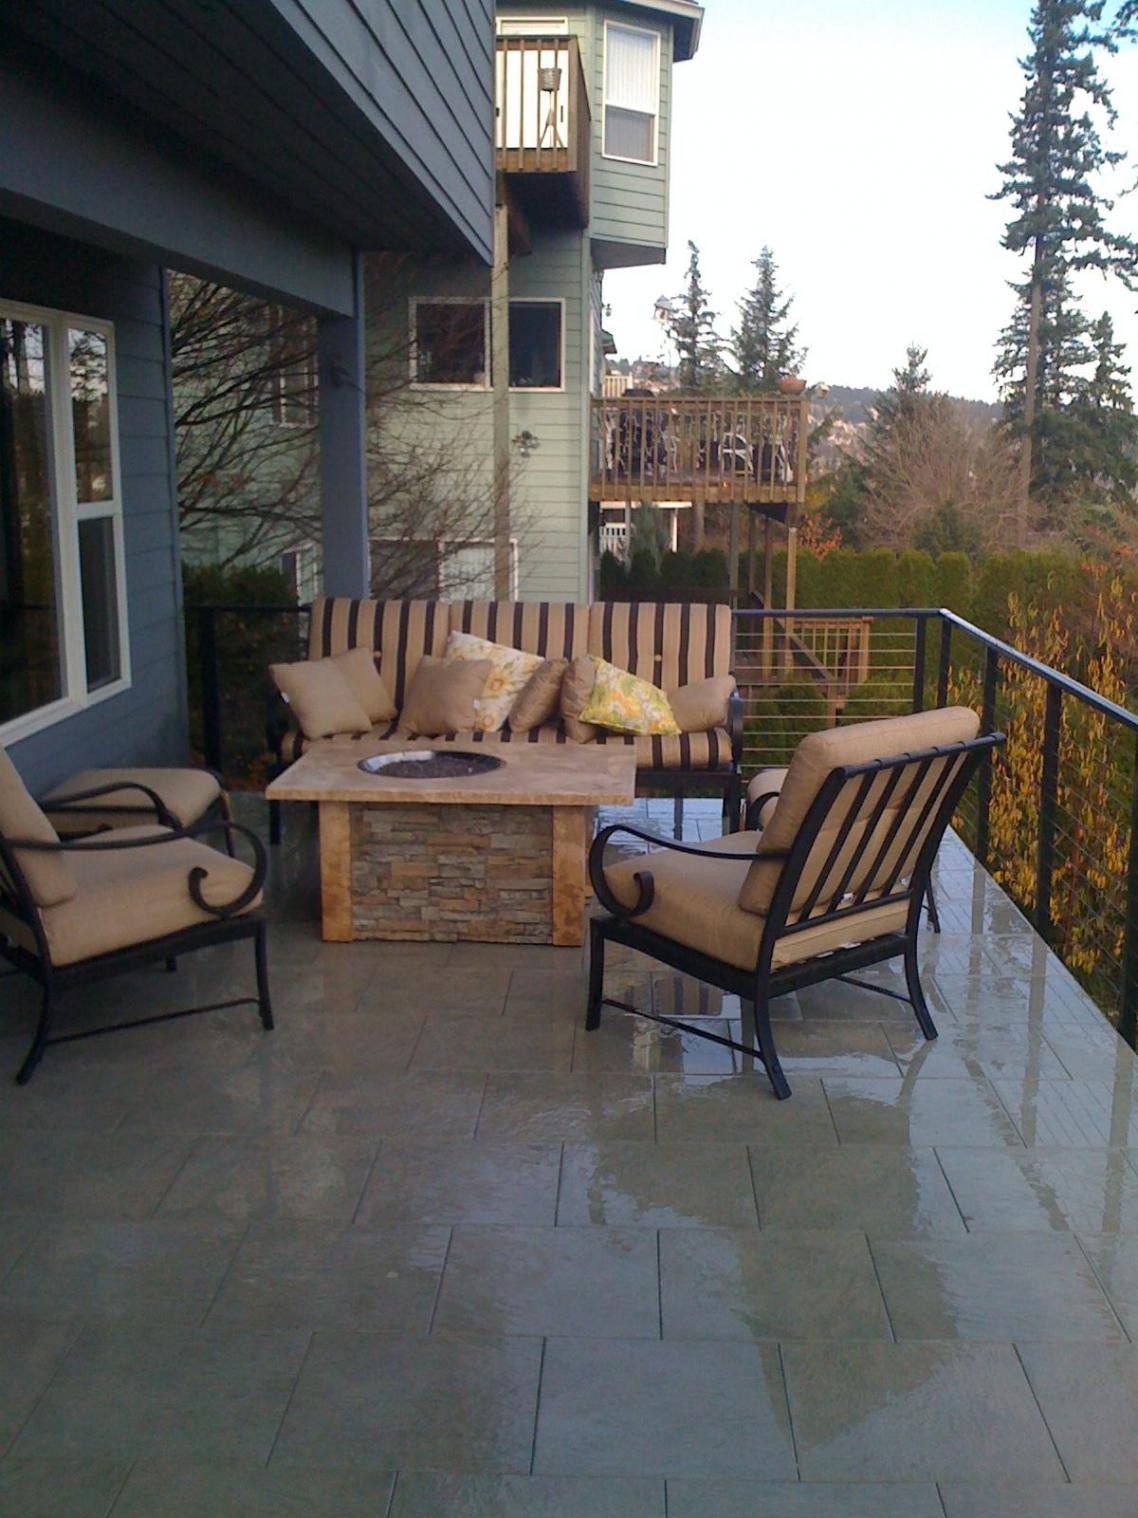 Firepit Or Chiminea On Elevated Deck Methods Decks Fencing within proportions 1138 X 1518